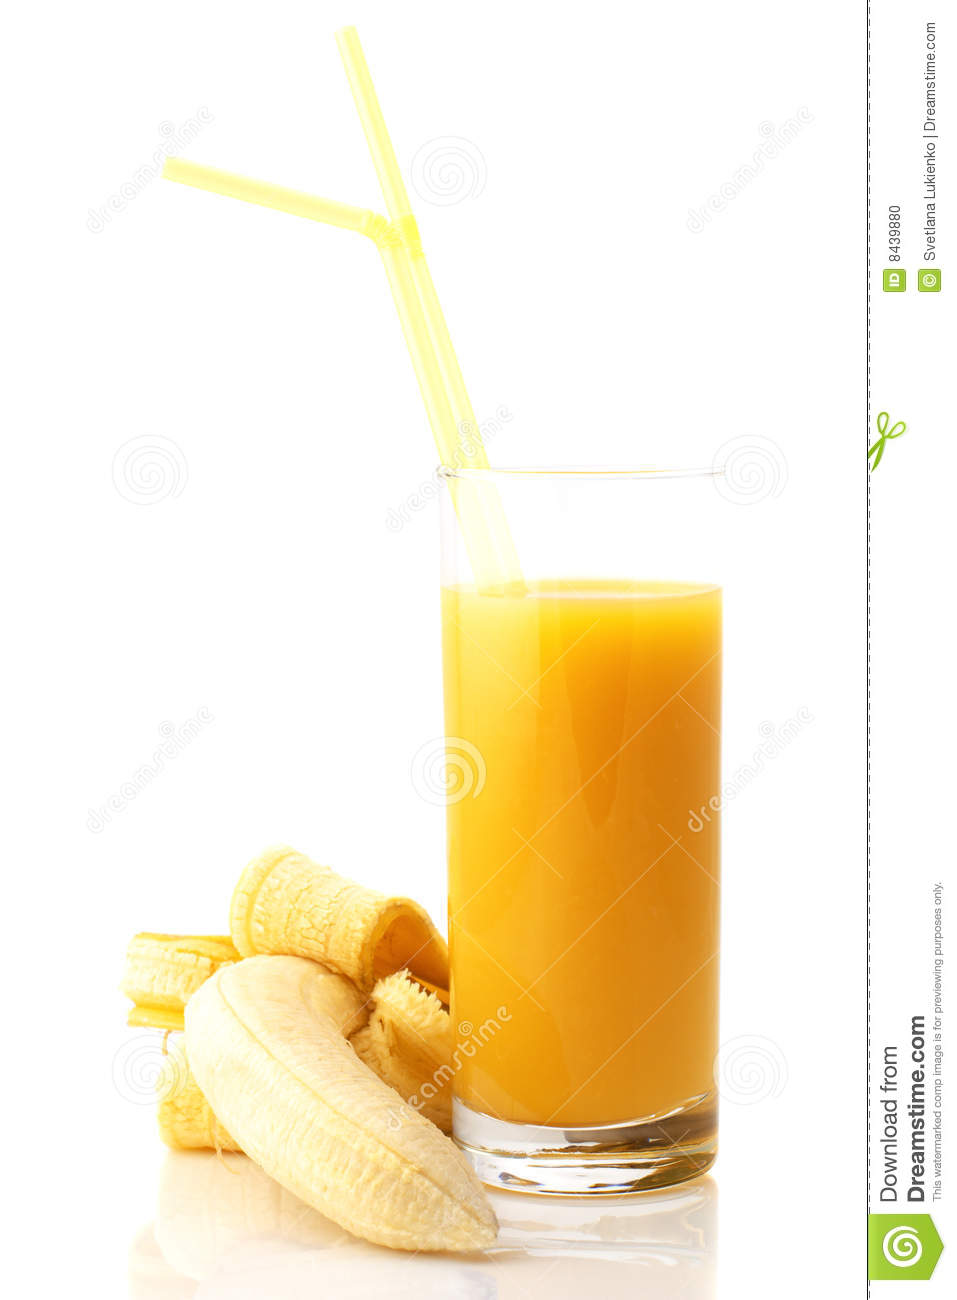 More similar stock images of banana and juice